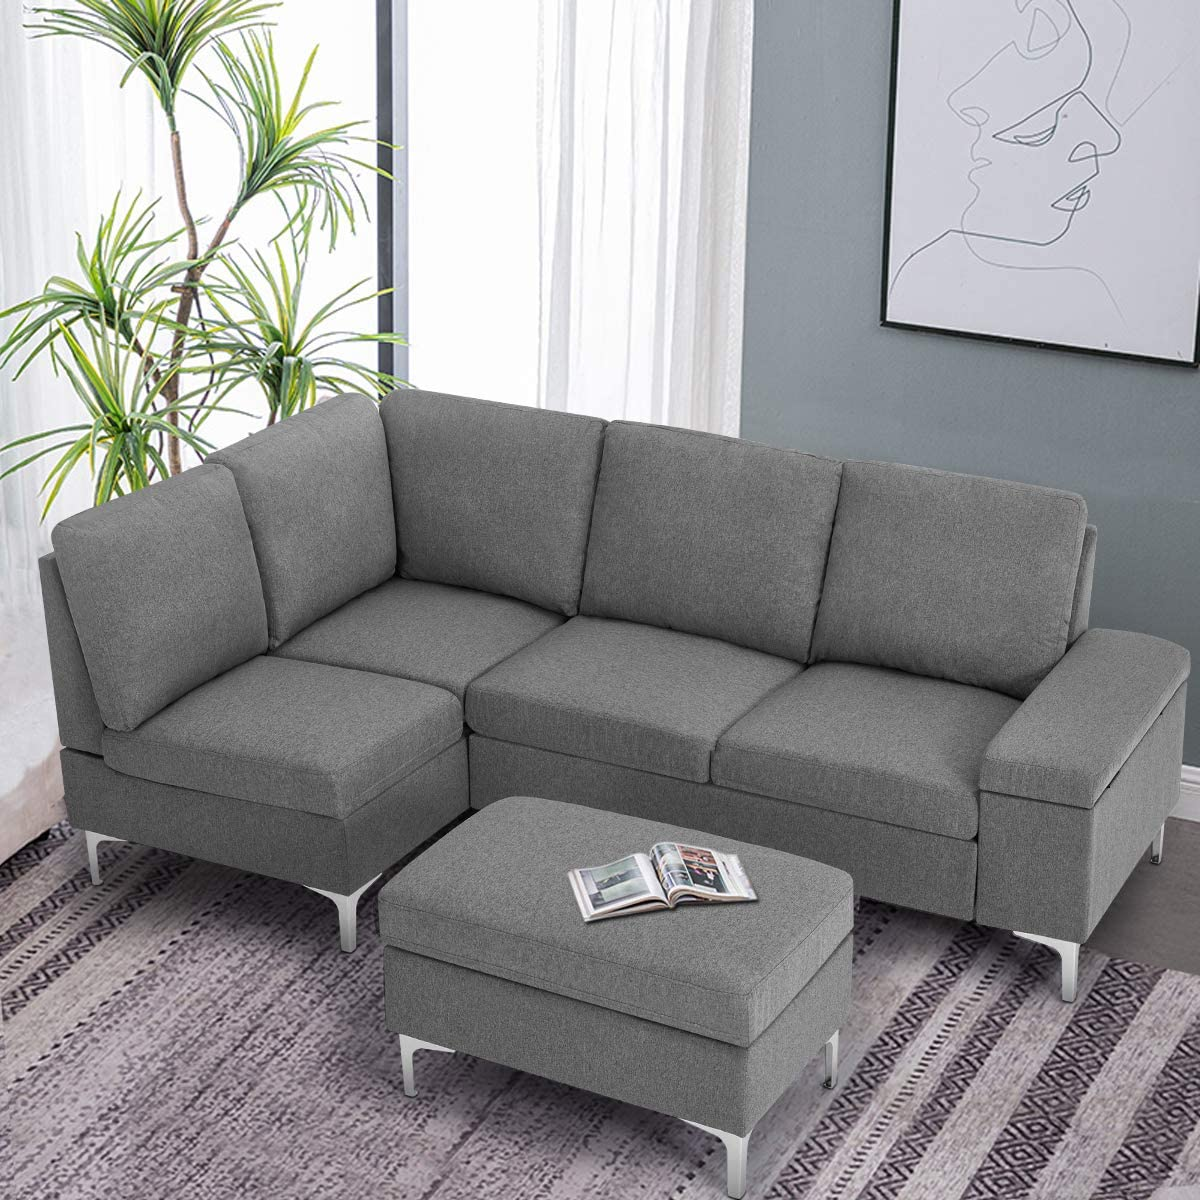 small-spaces-configurable-sectional-sofa